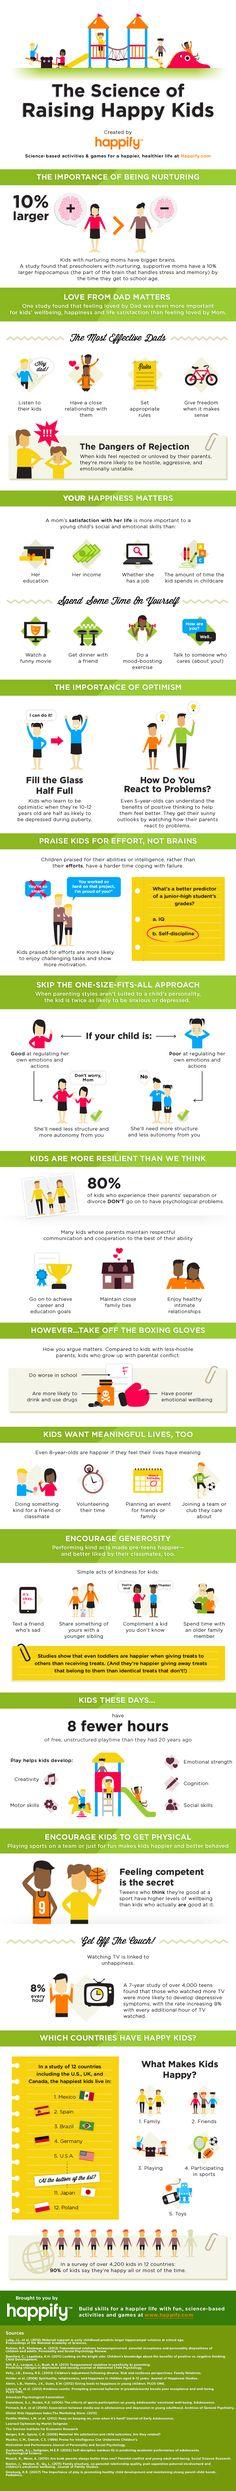 Bellyitch: Dads' love, Happy Moms & being Active make Happy Kids (INFOGRAPHIC)